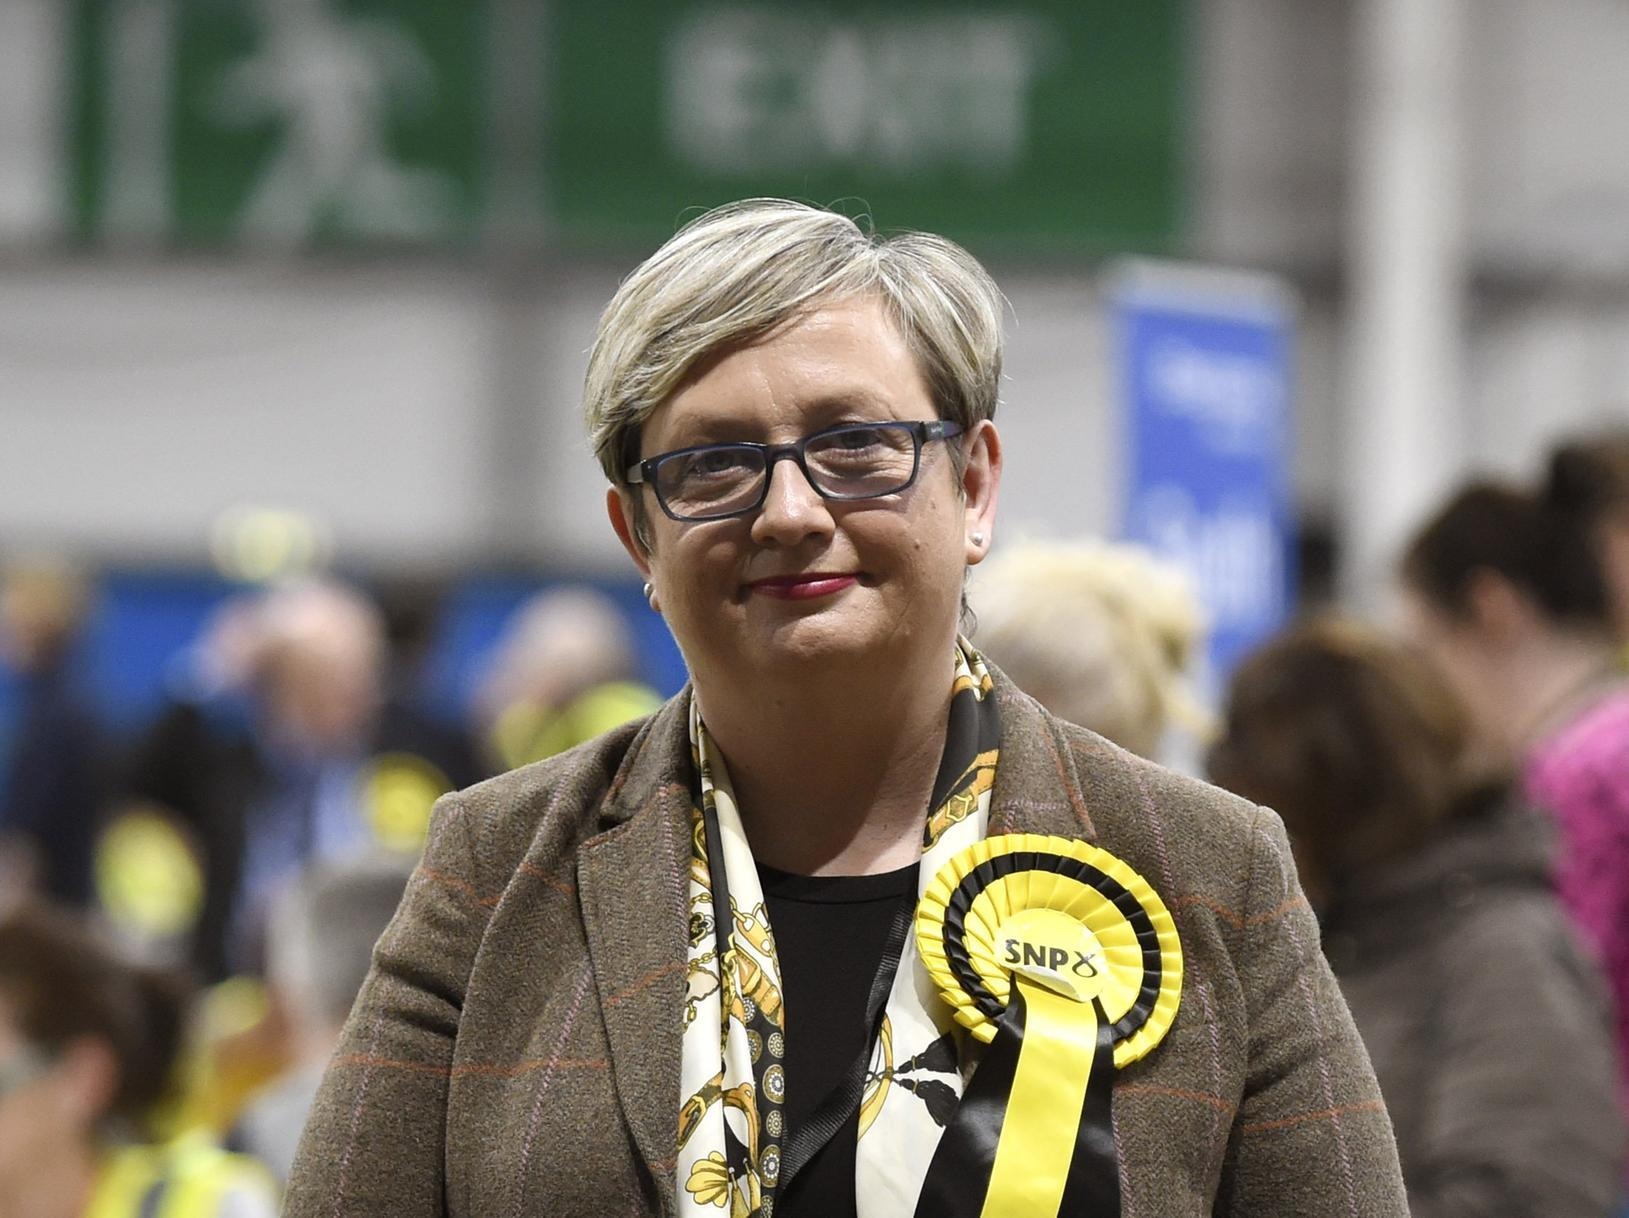 Edinburgh MP Joanna Cherry under fire amid claims by-election could cost nearly £250,000